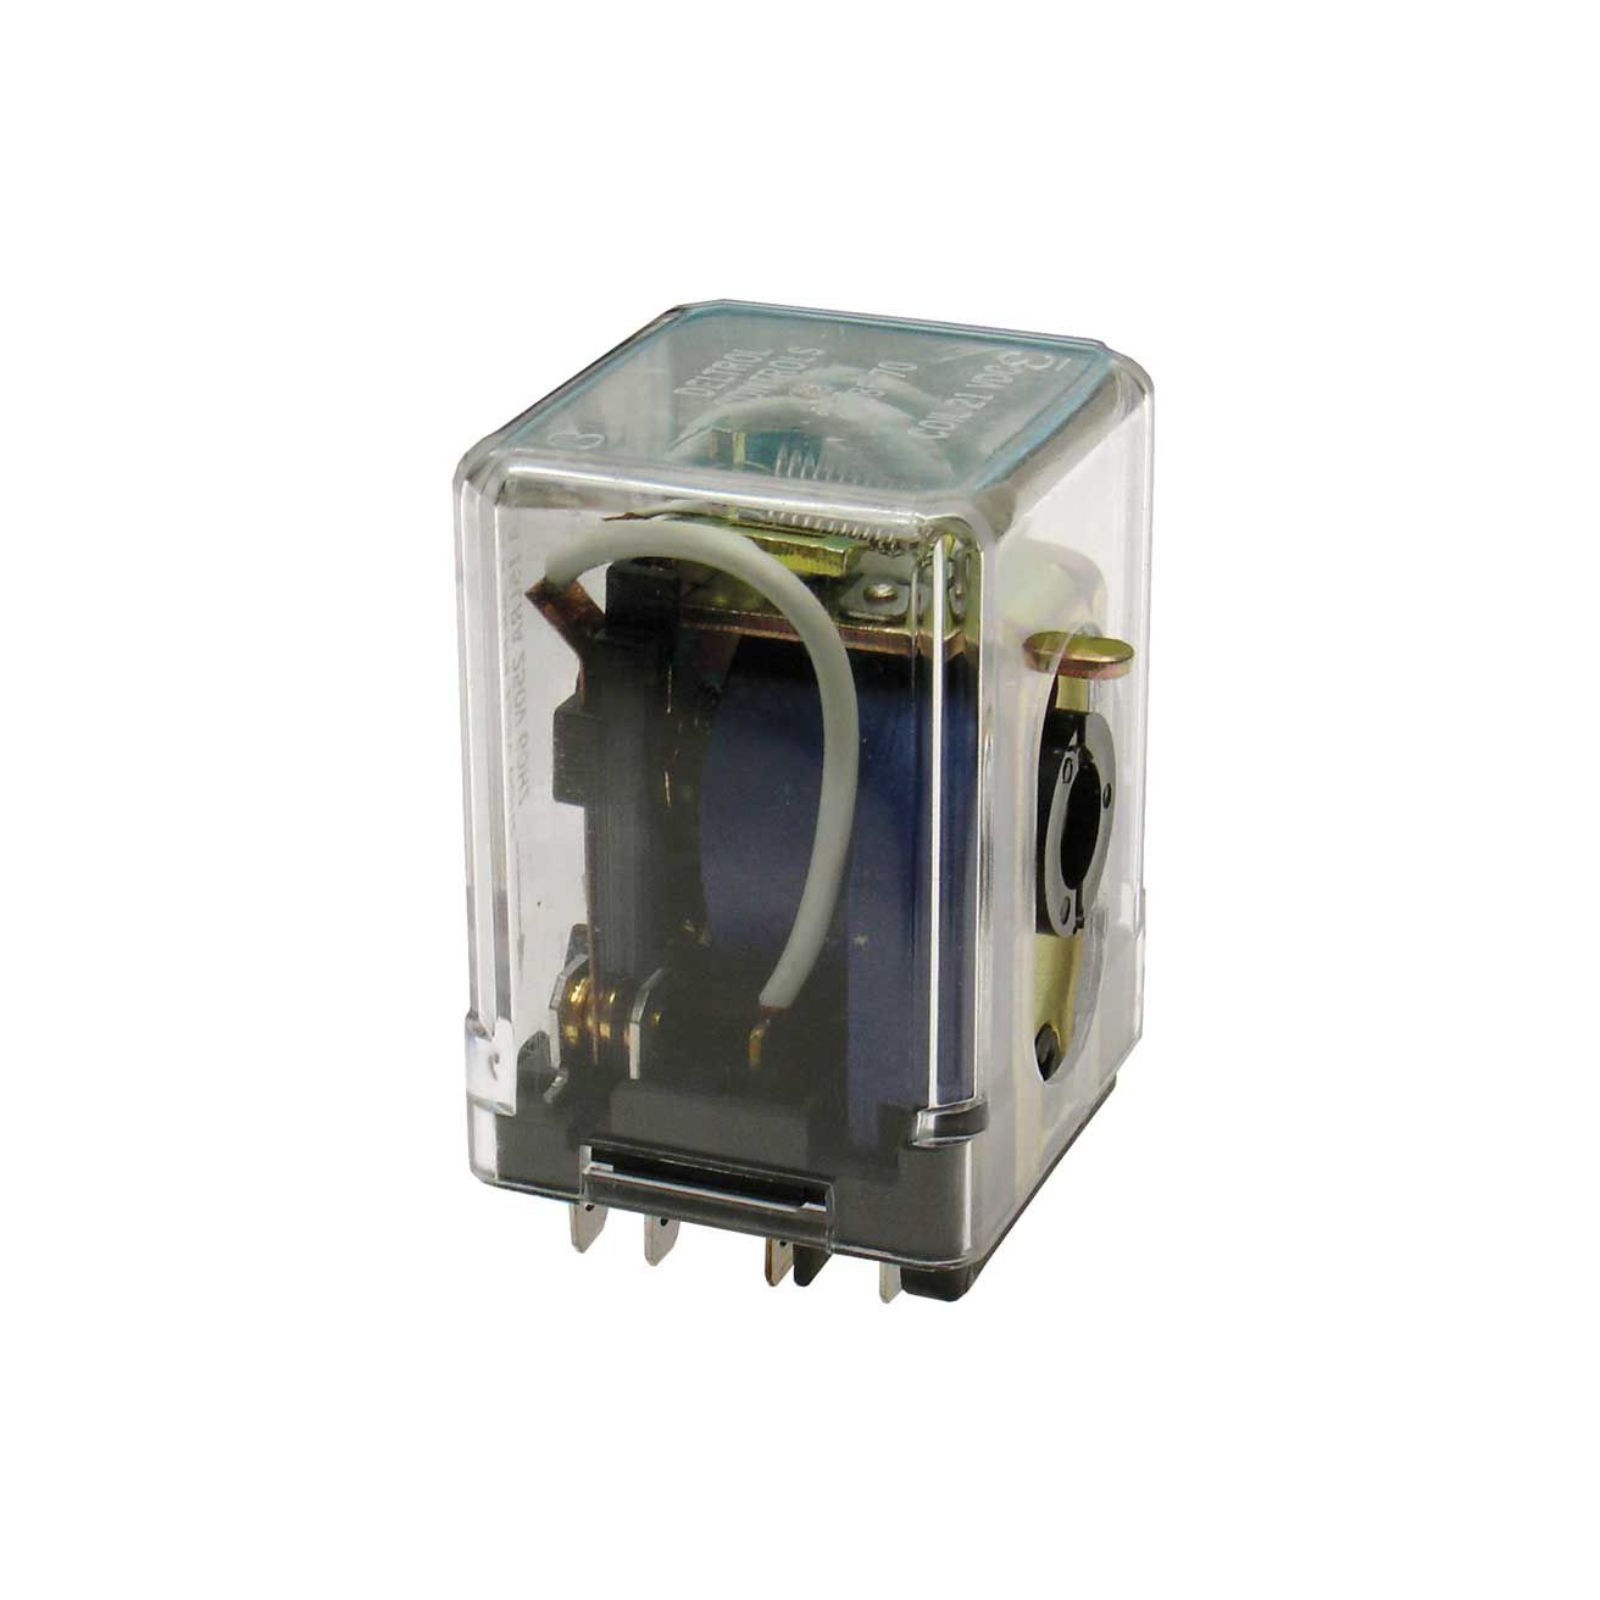 White-Rodgers 42-21518-81 - Defrost Relay